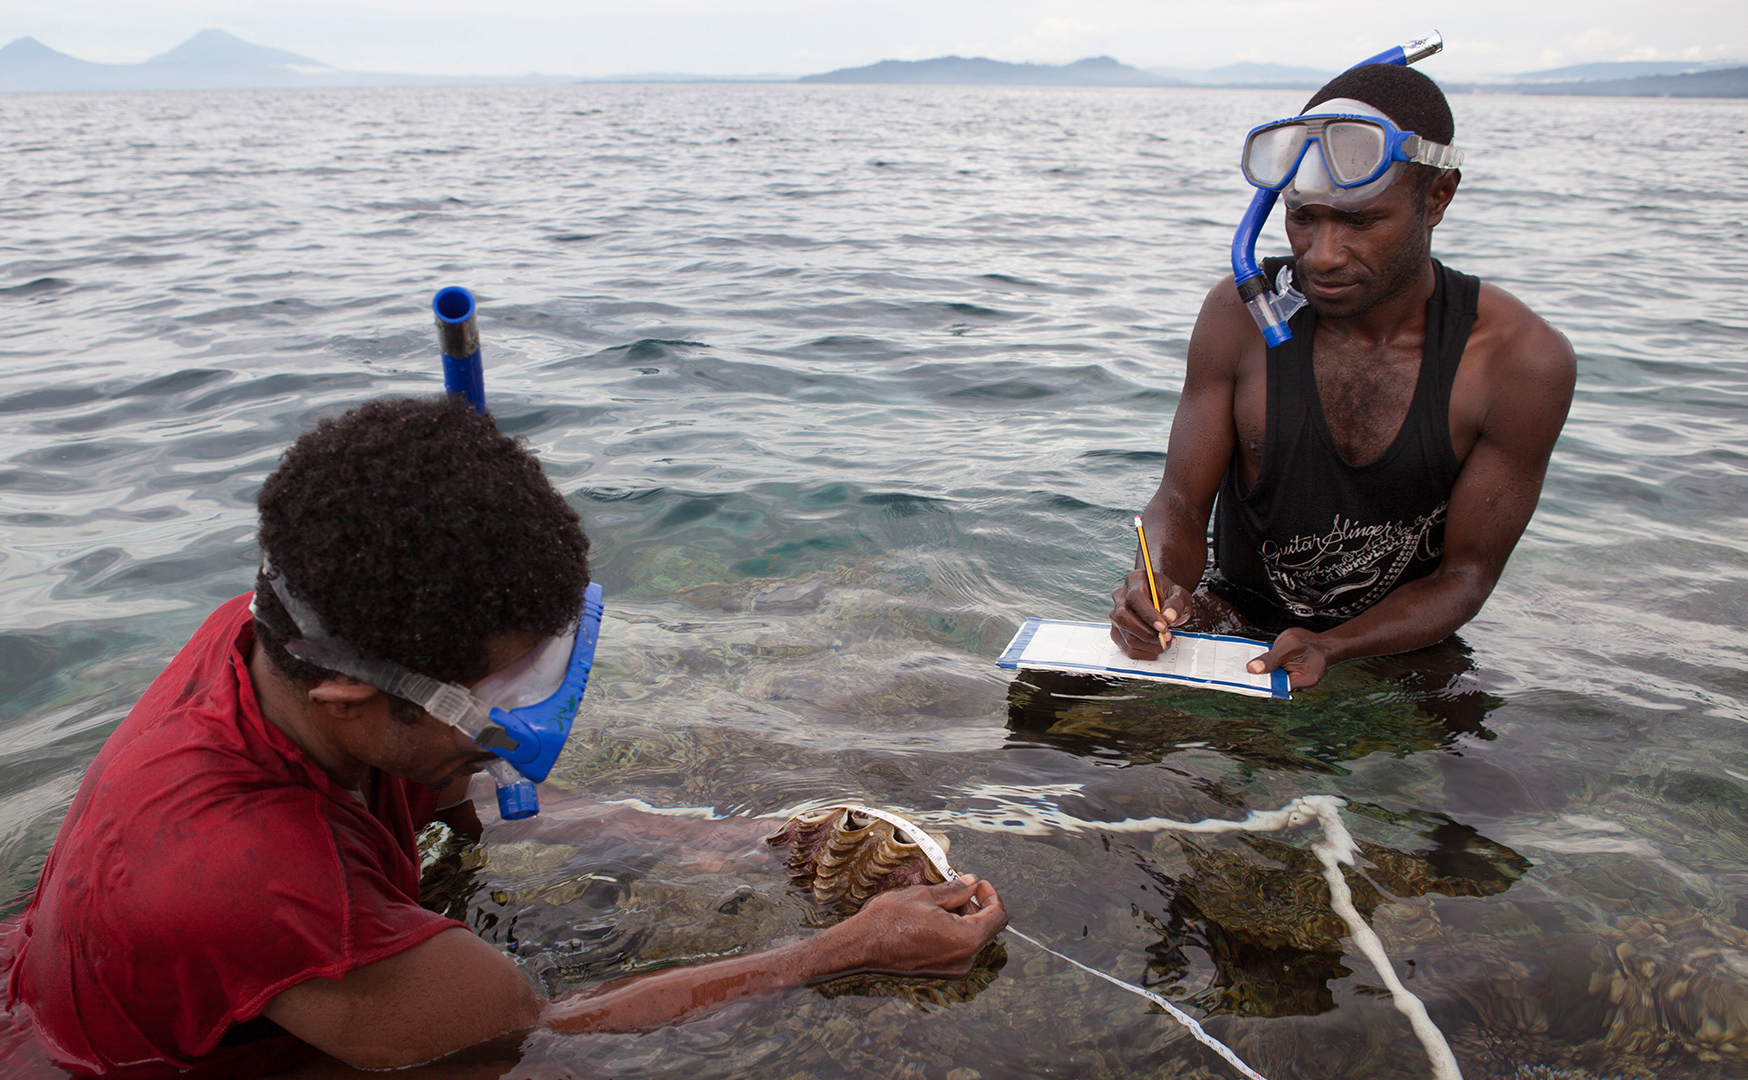 Two men in the ocean off Papua New Guinea measuring the size of marine life and recording findings